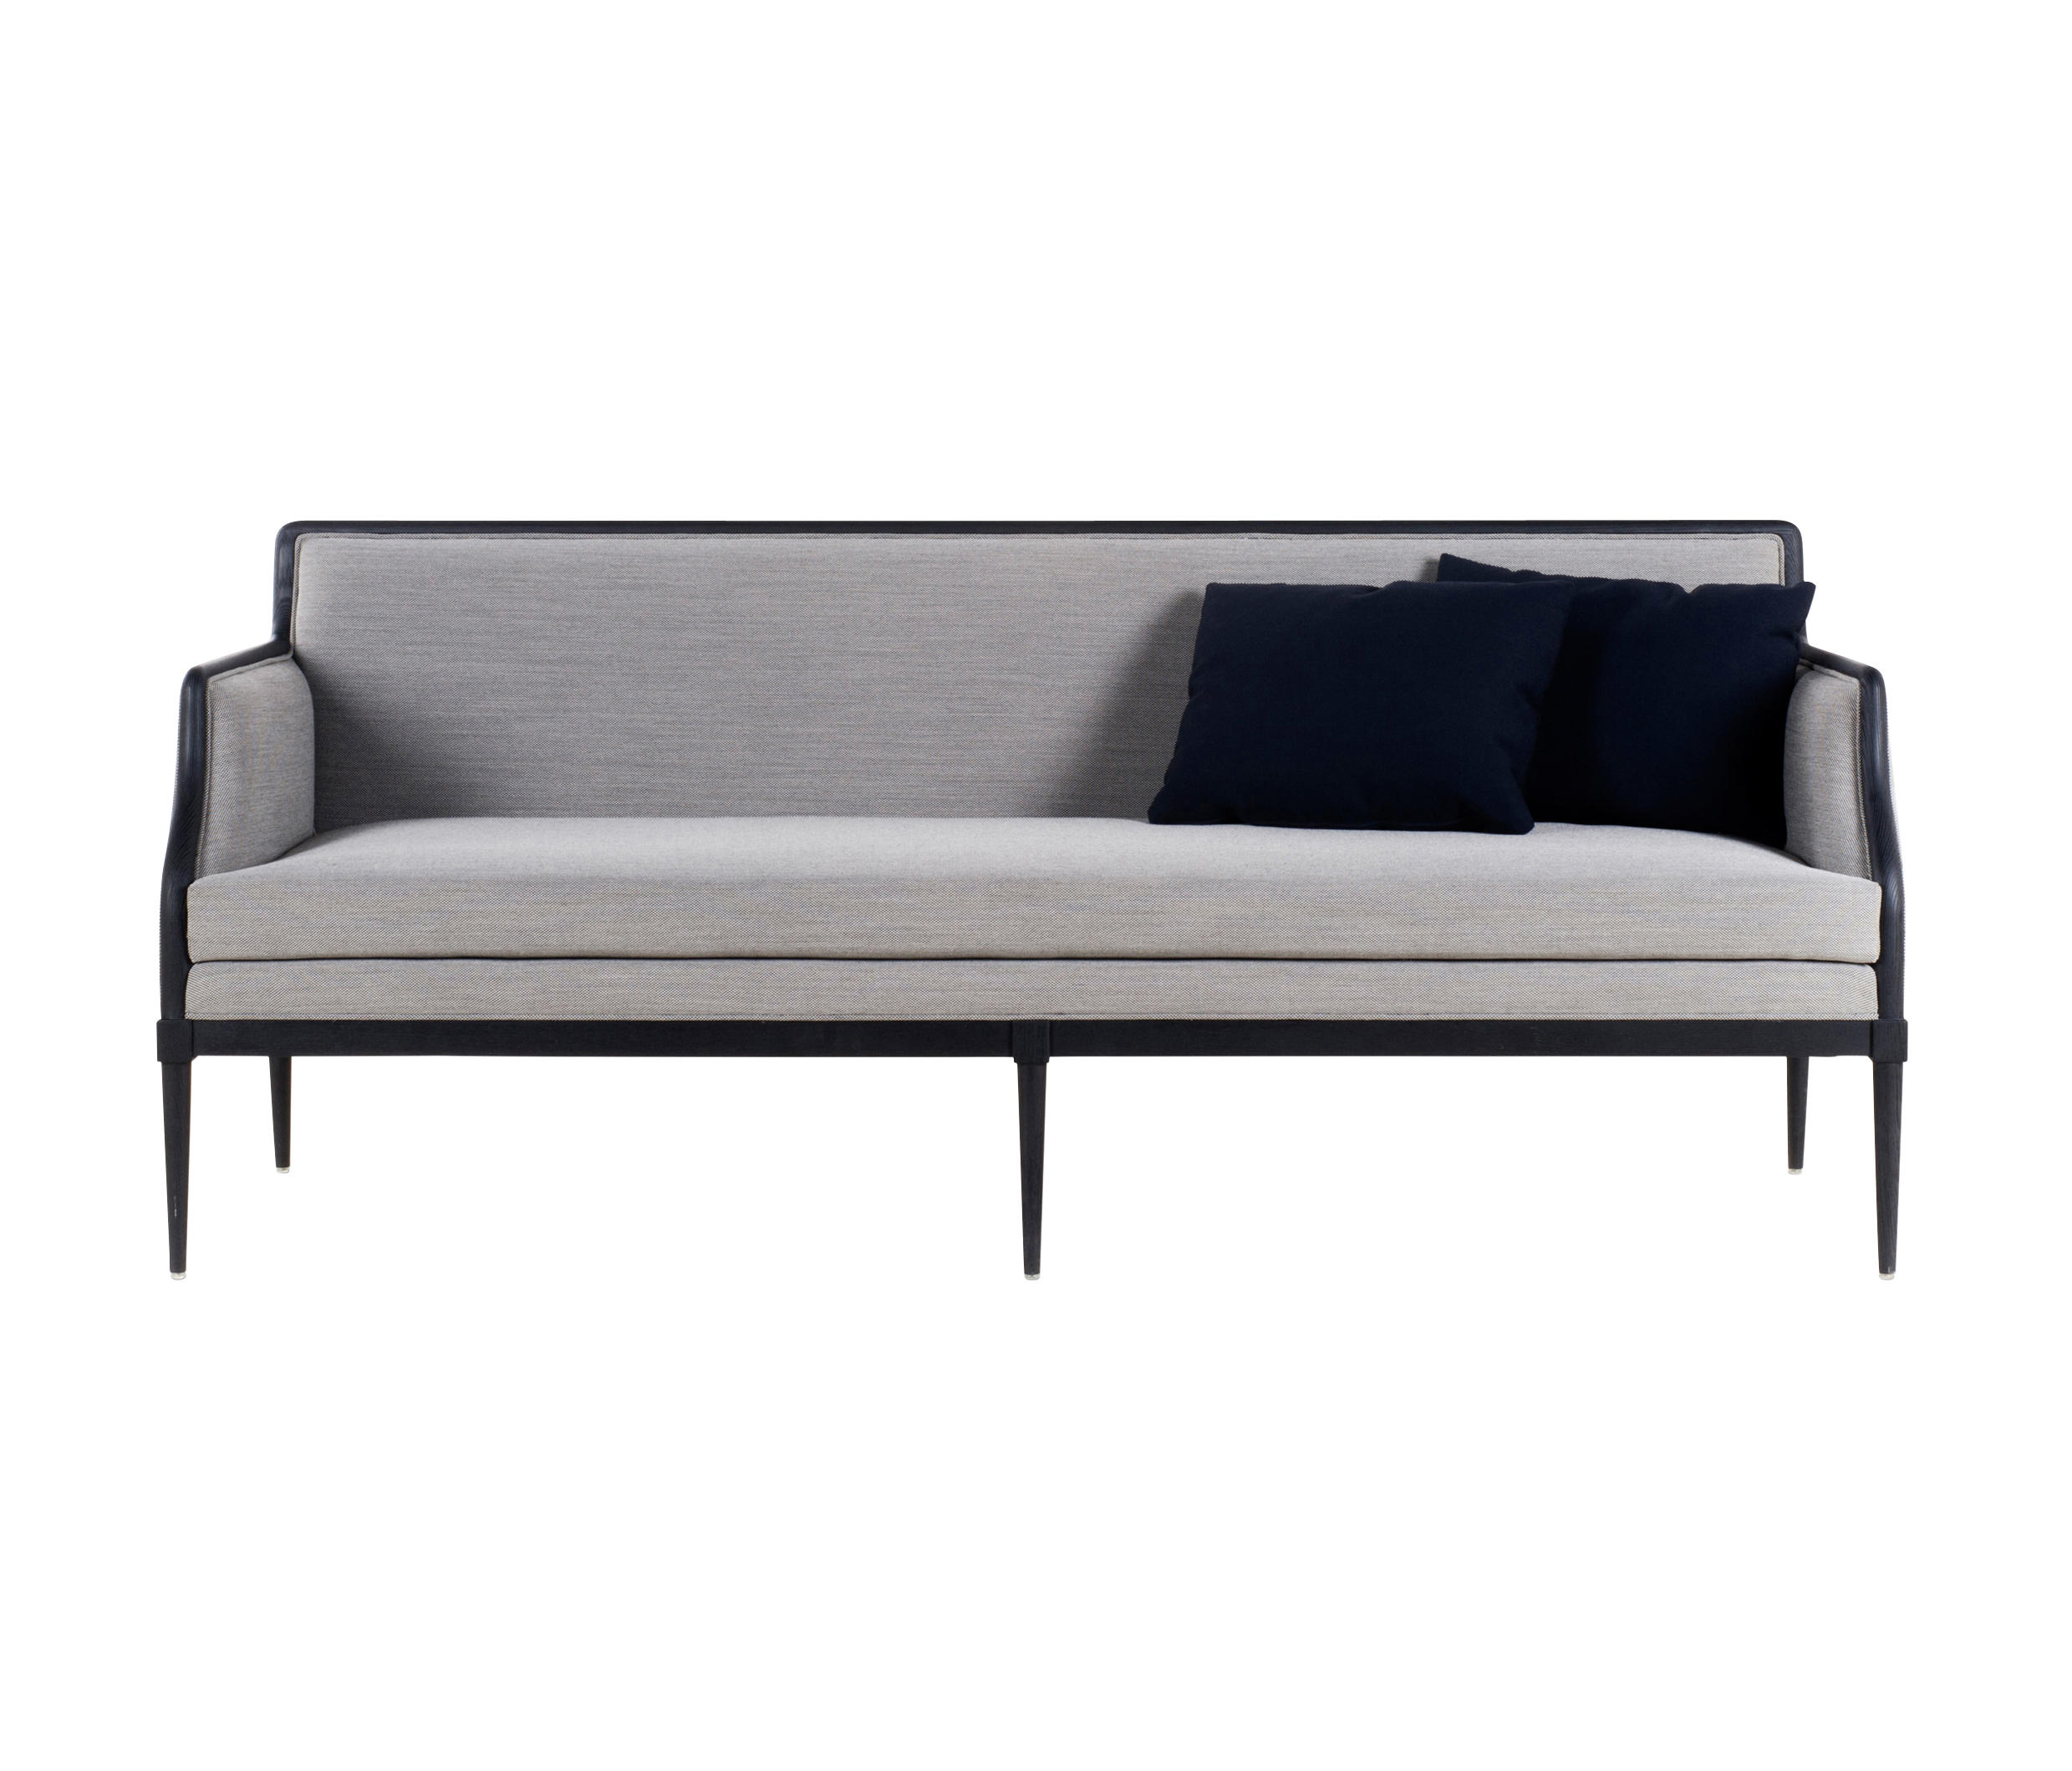 Laval sofa sofas from stellar works architonic for Sofa lit laval